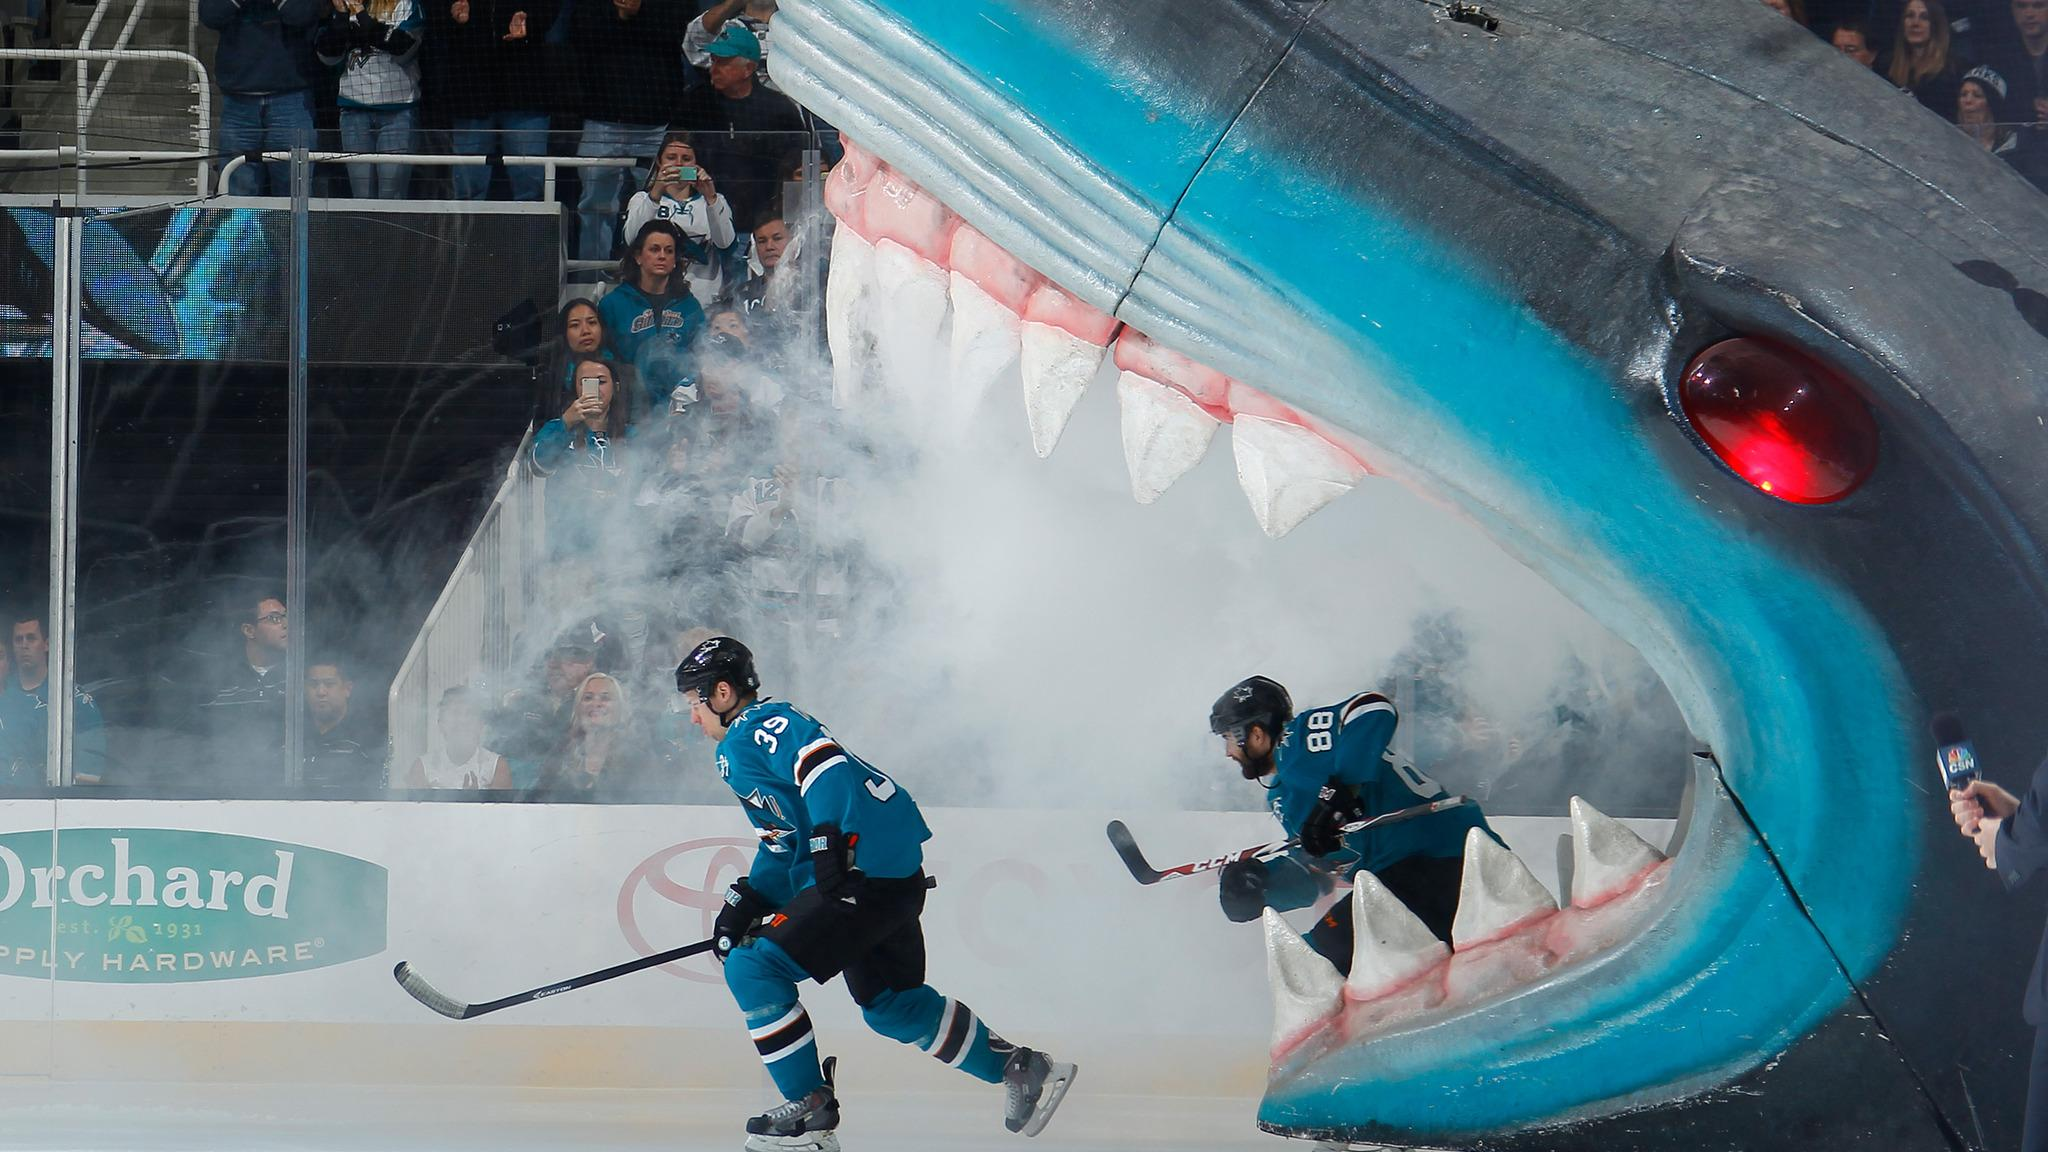 San Jose Sharks v. Vancouver Canucks - Preseason